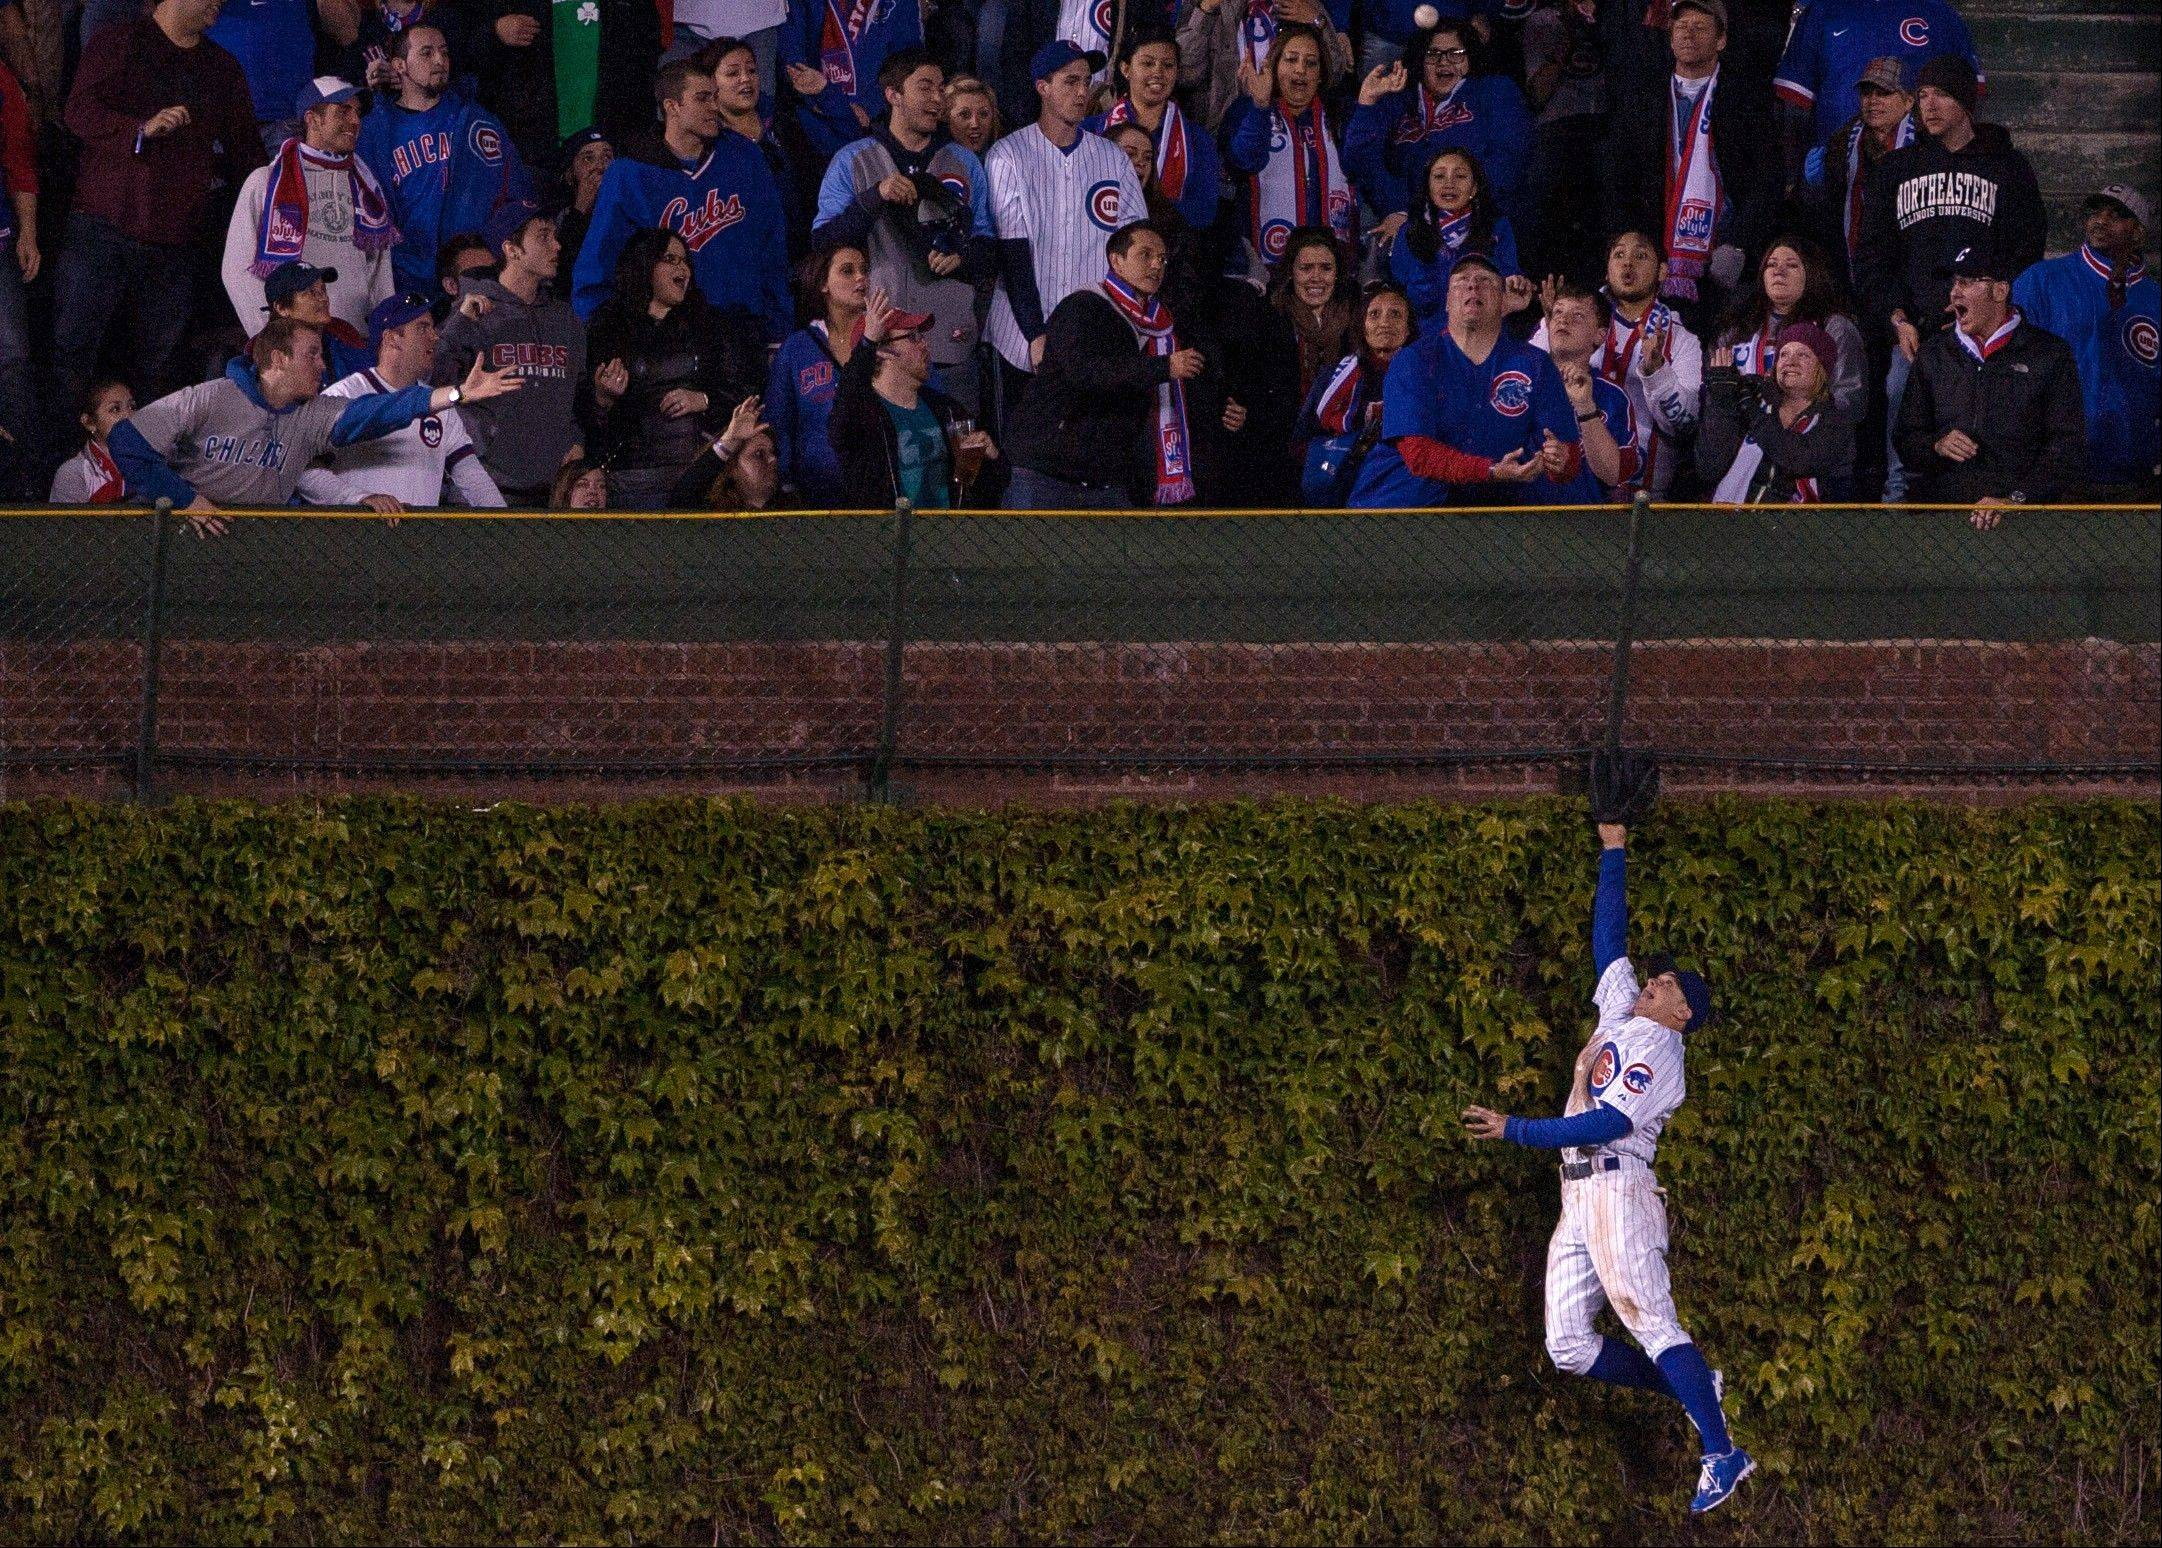 The Cubs' Tony Campana can't make the catch on a 2-run home run by St. Louis Cardinals' Matt Holliday during the eighth inning of their game Tuesday at Wrigley Field.